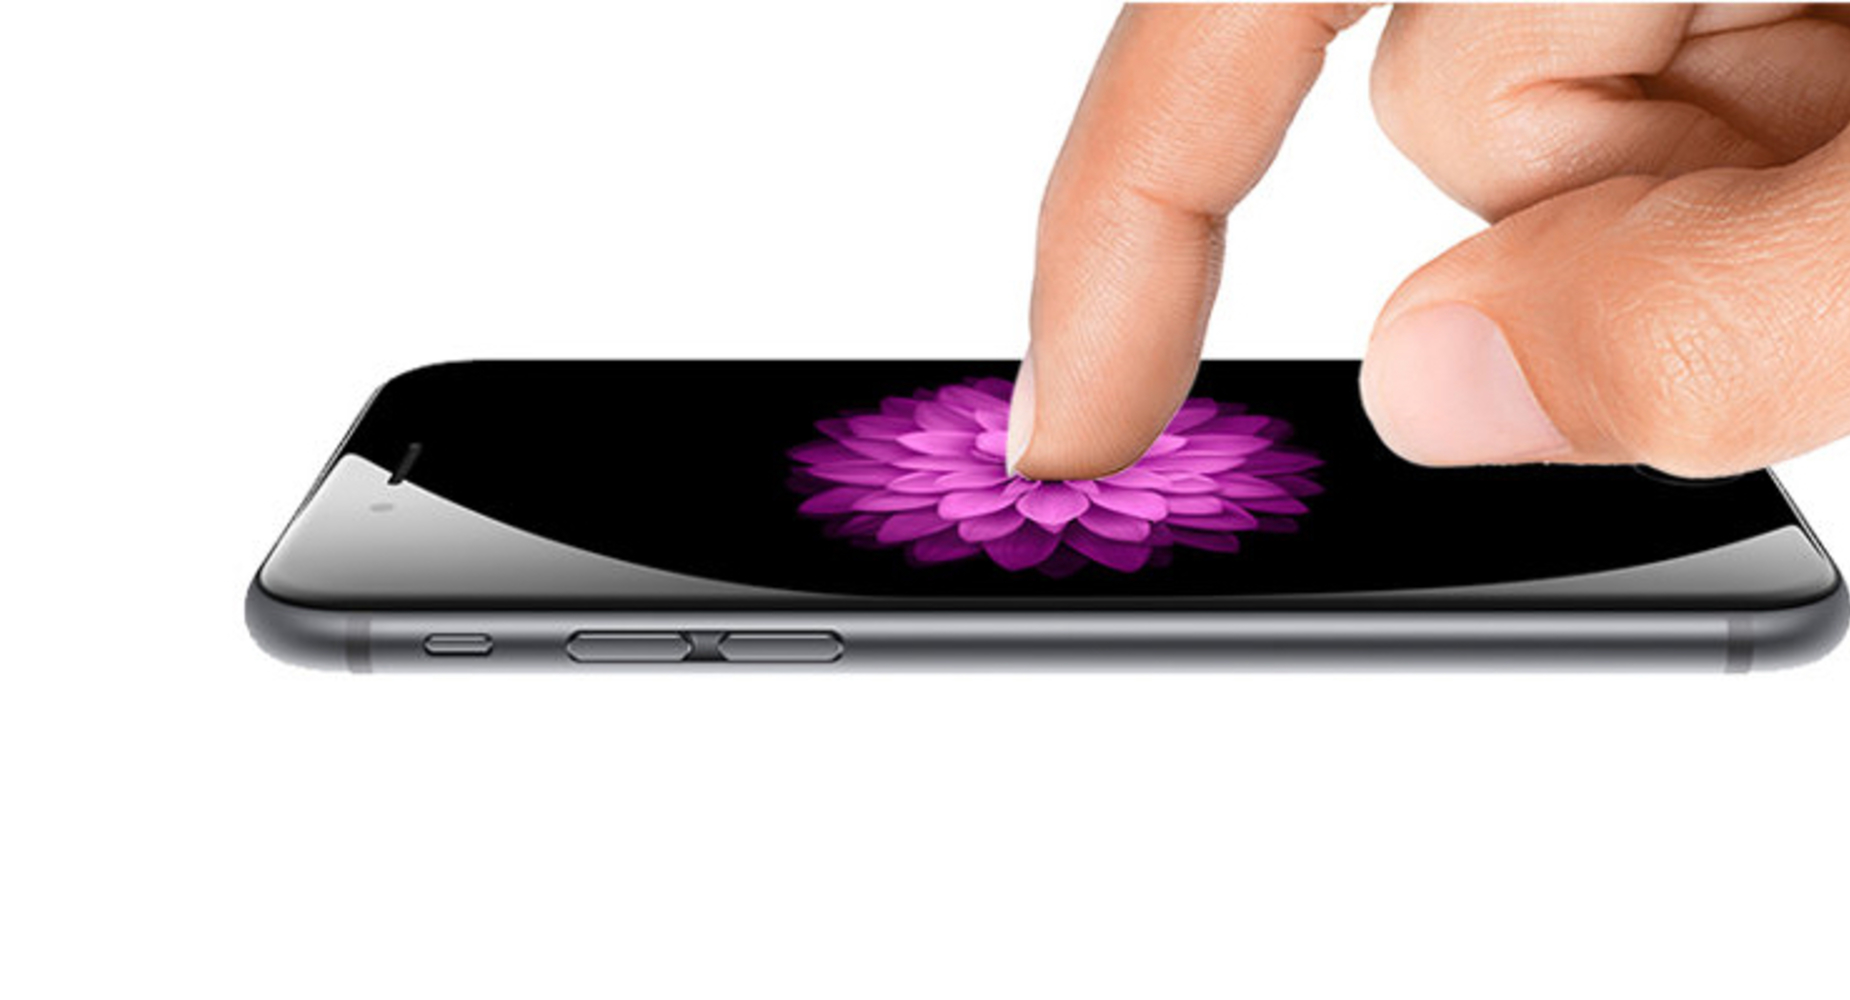 Next iPhone to include Force Touch and pink color option